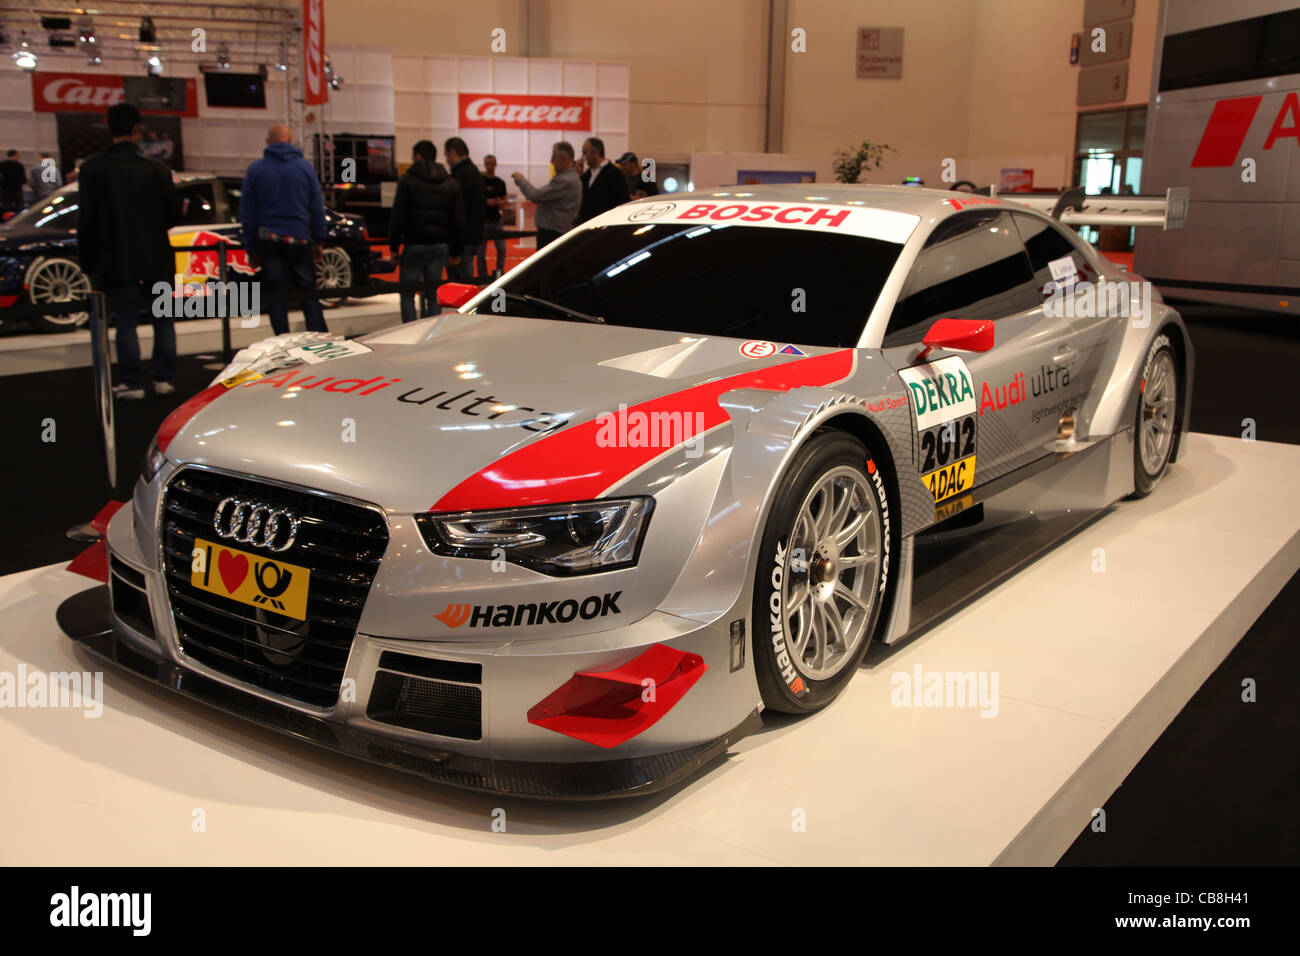 Audi A5 DTM R17 shown at the Essen Motor Show in Essen, Germany, on November 29, 2011 - Stock Image